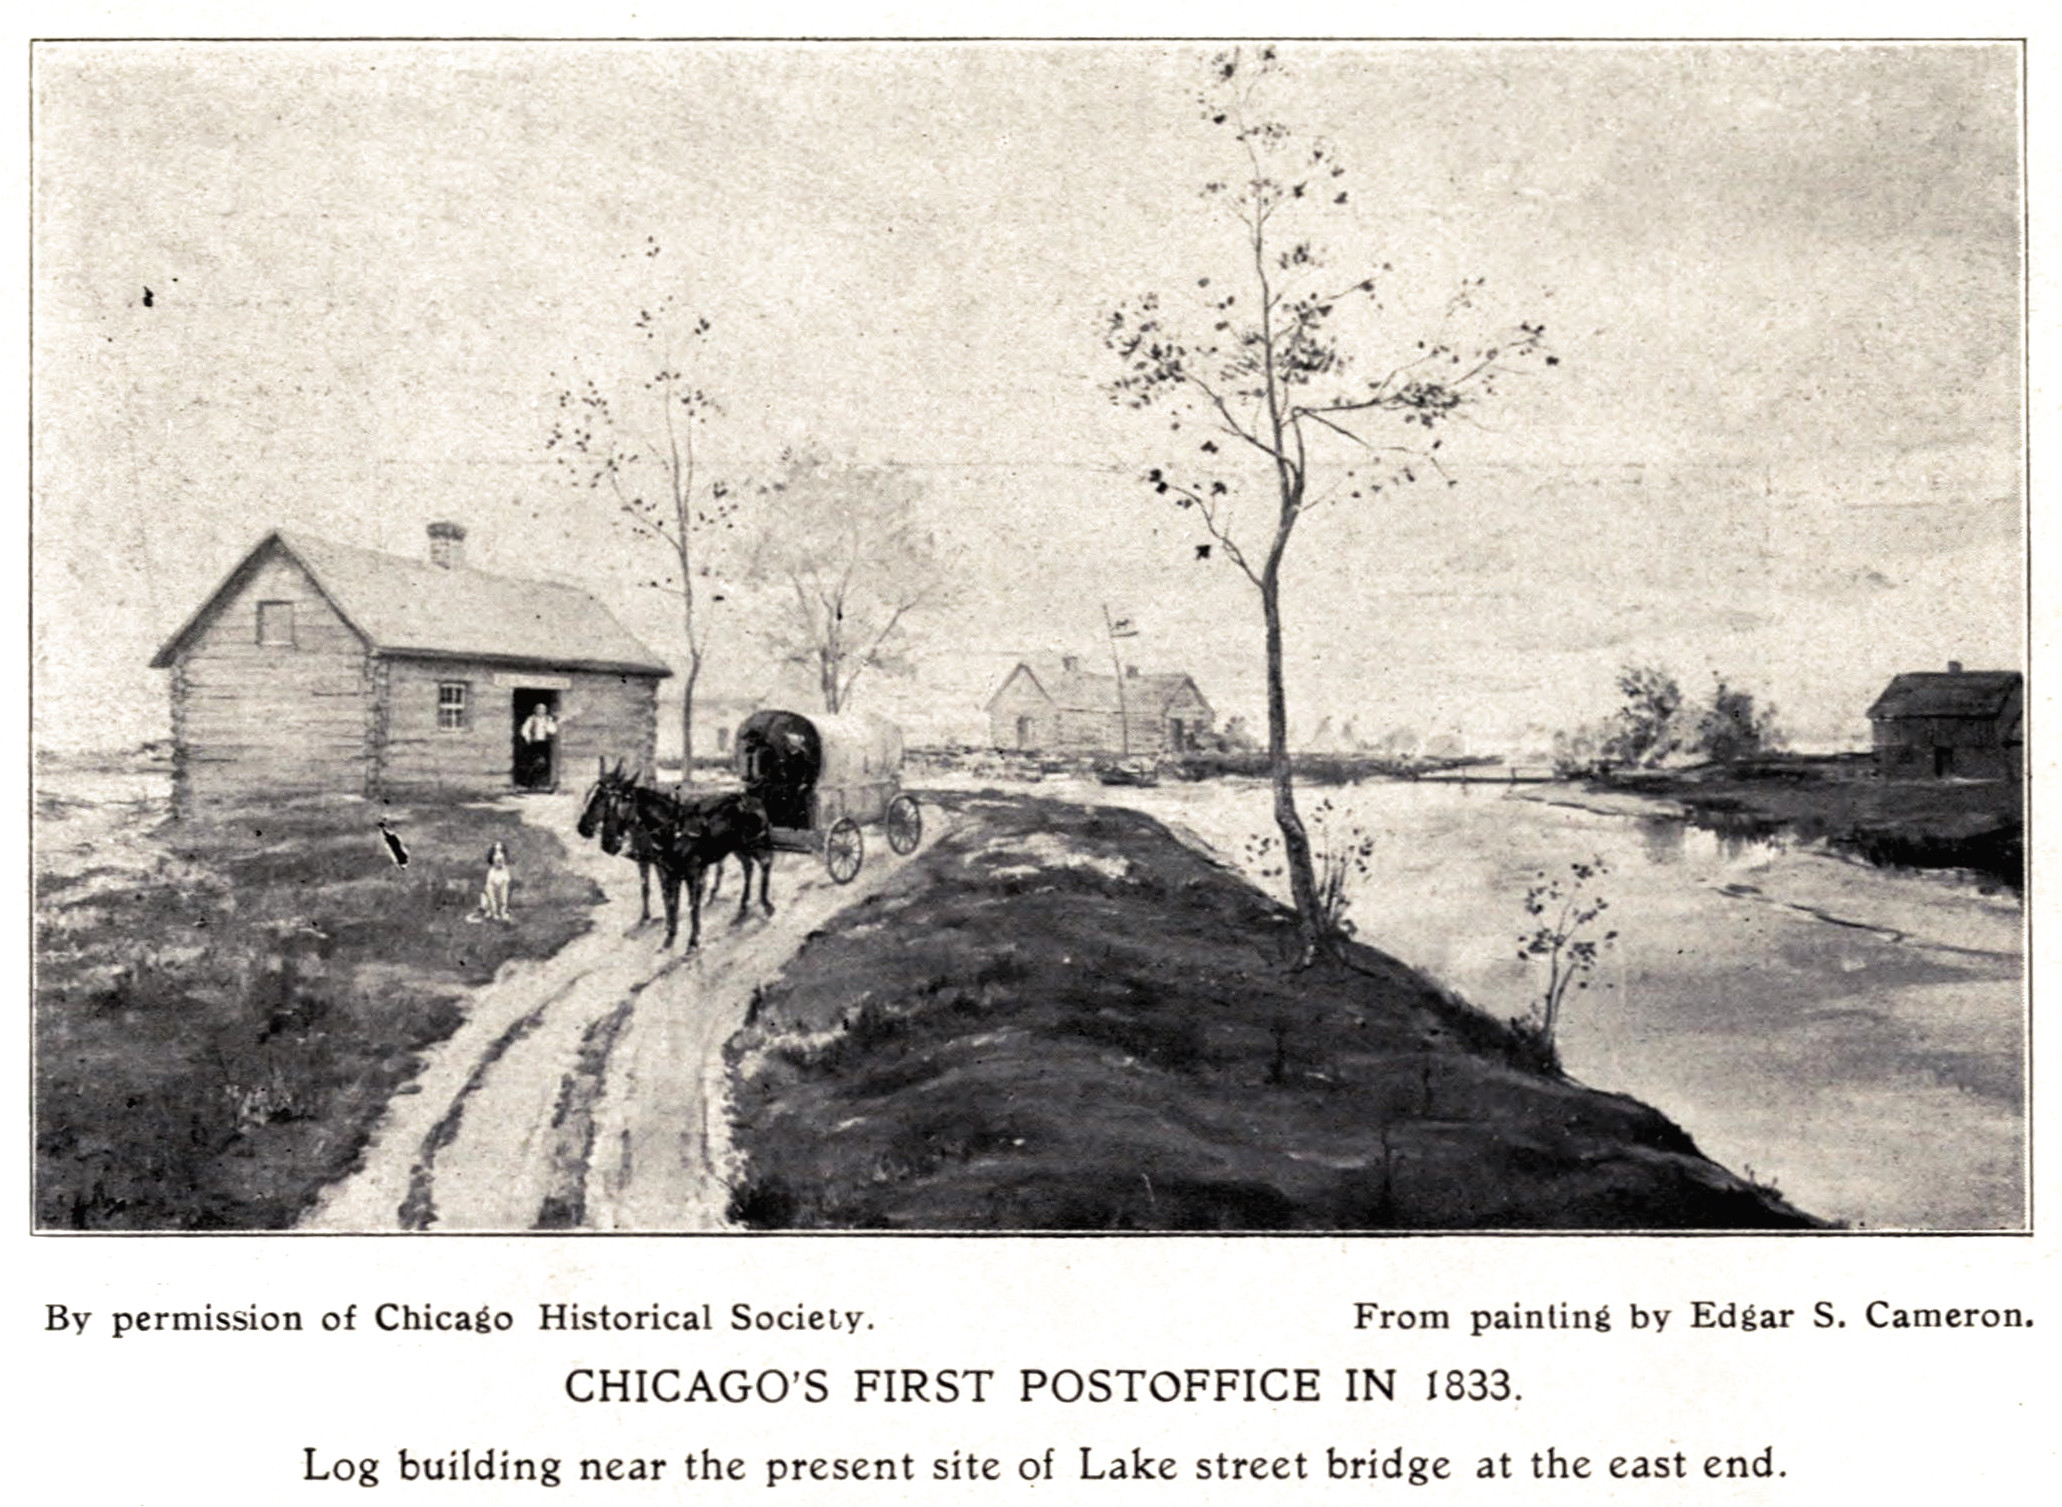 File:Chicago's first post office, 1833.jpg